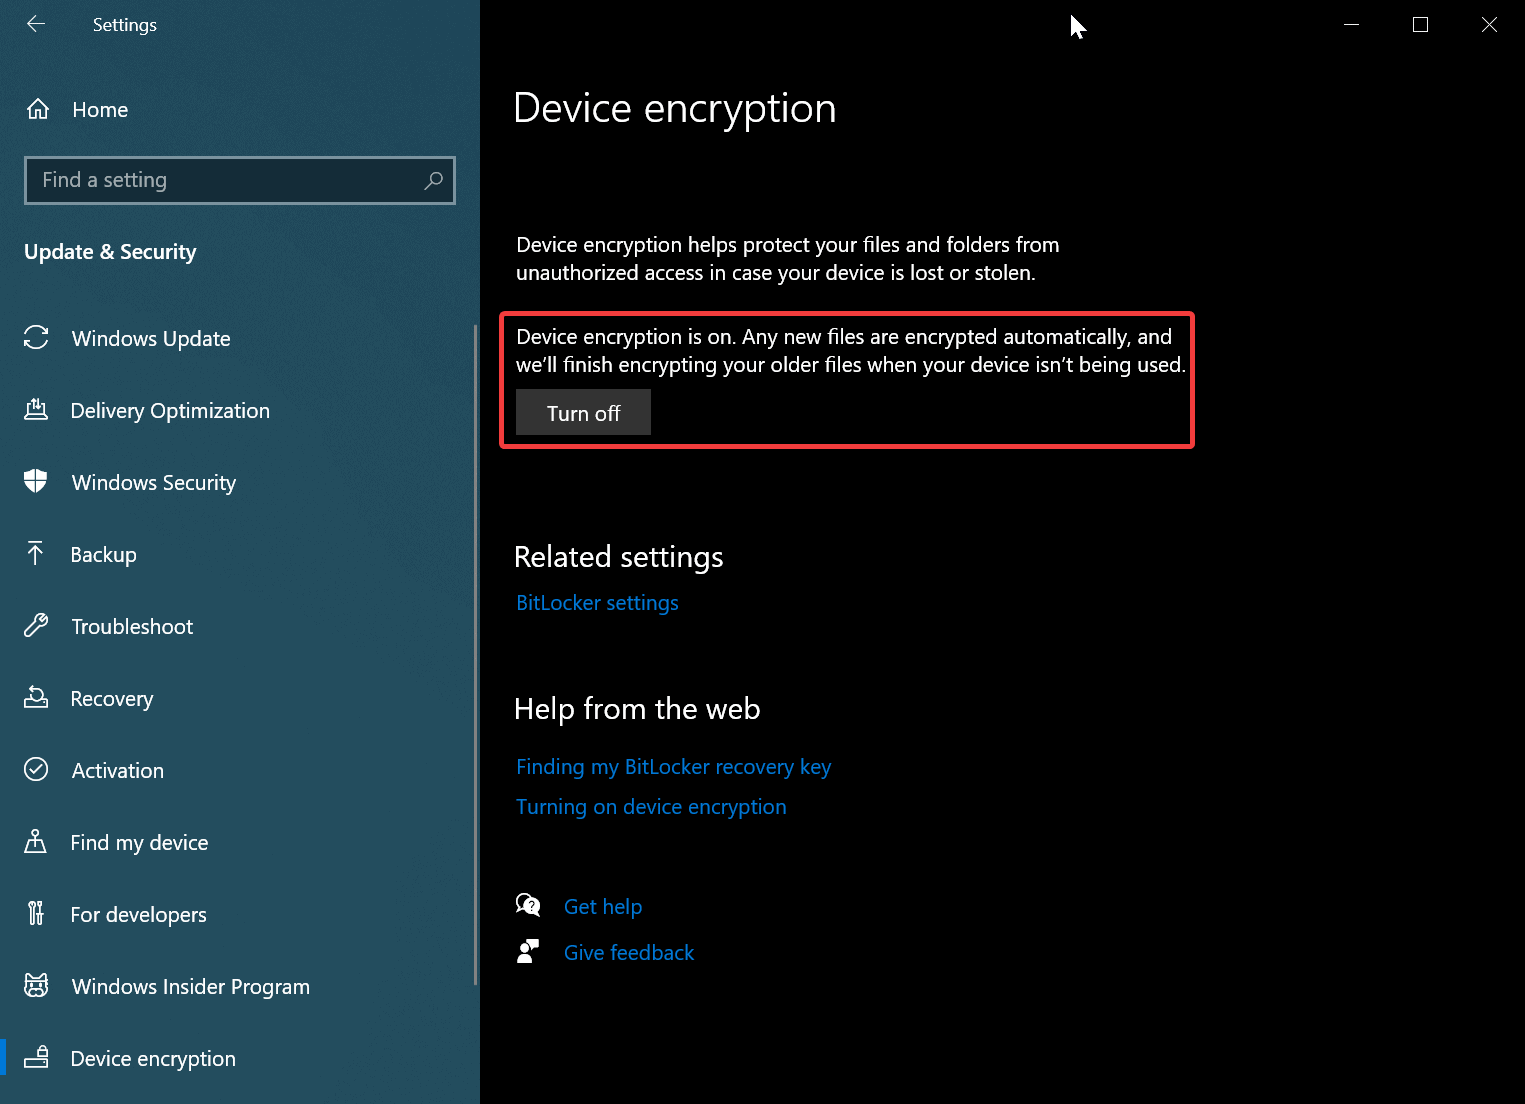 After turned on encryption on Windows 10